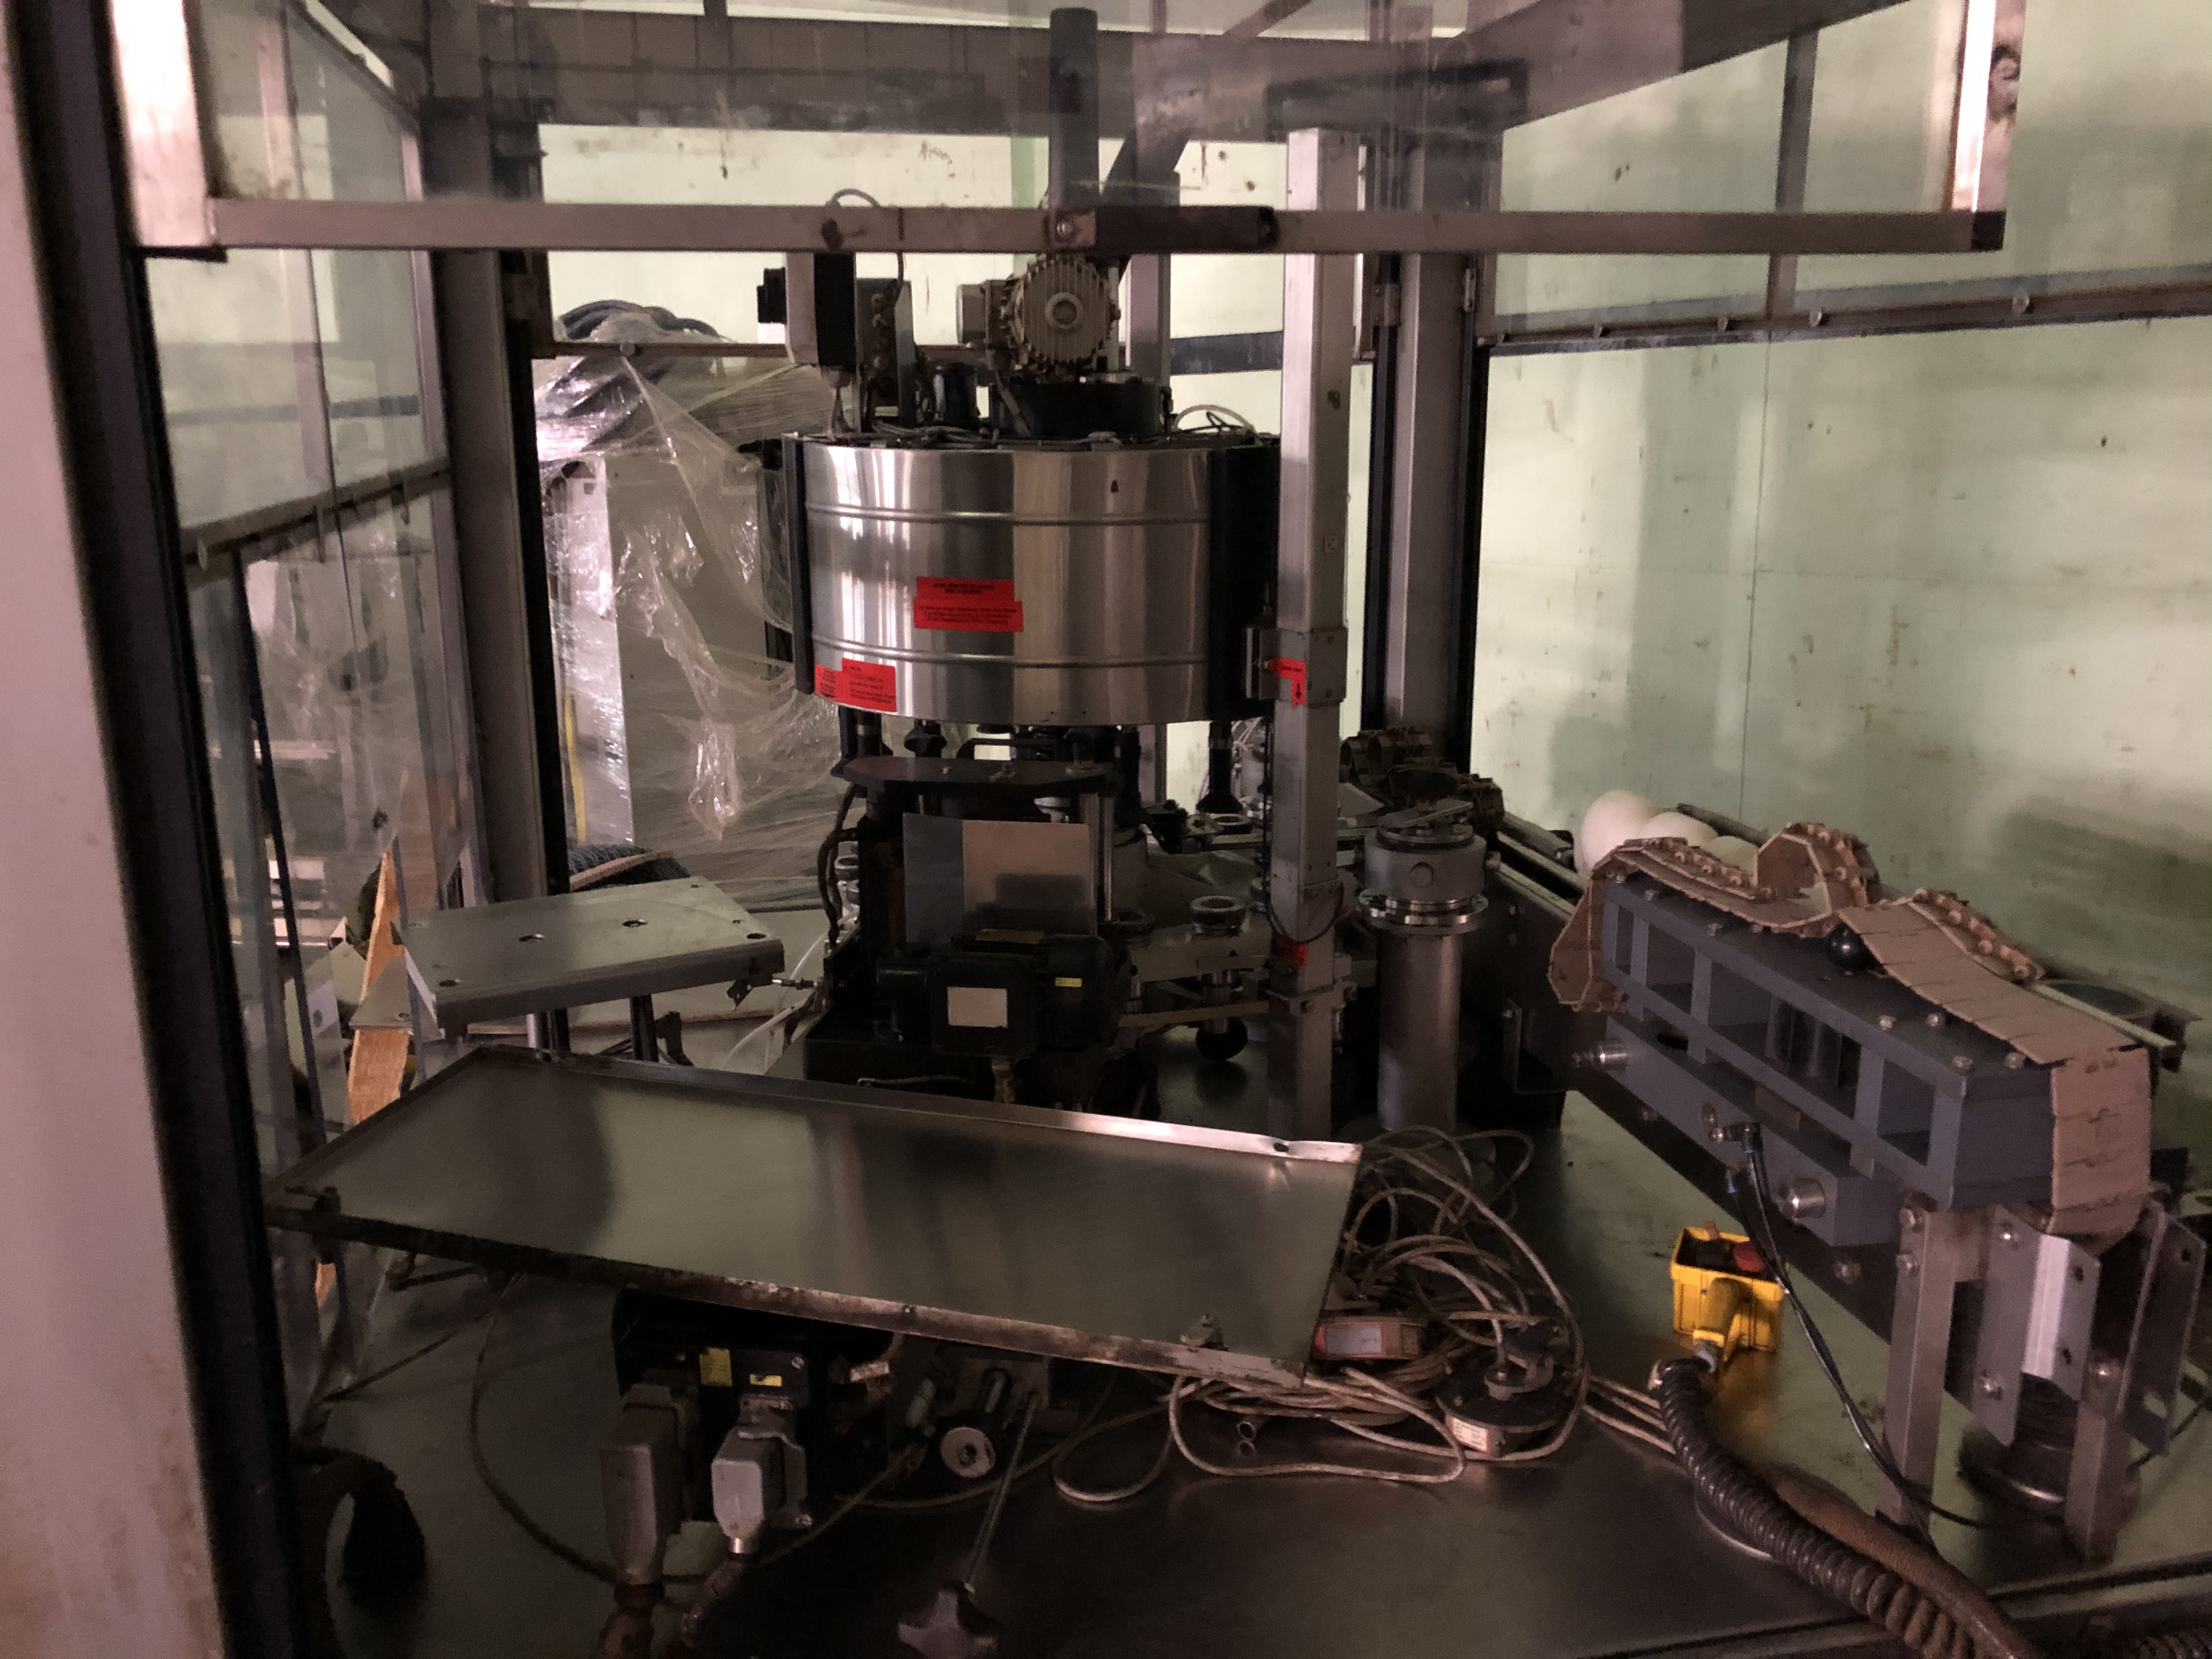 Krones Canmatic Labeler, Machine #073-Q82, RIGGING FEE - $1750 - Image 3 of 3